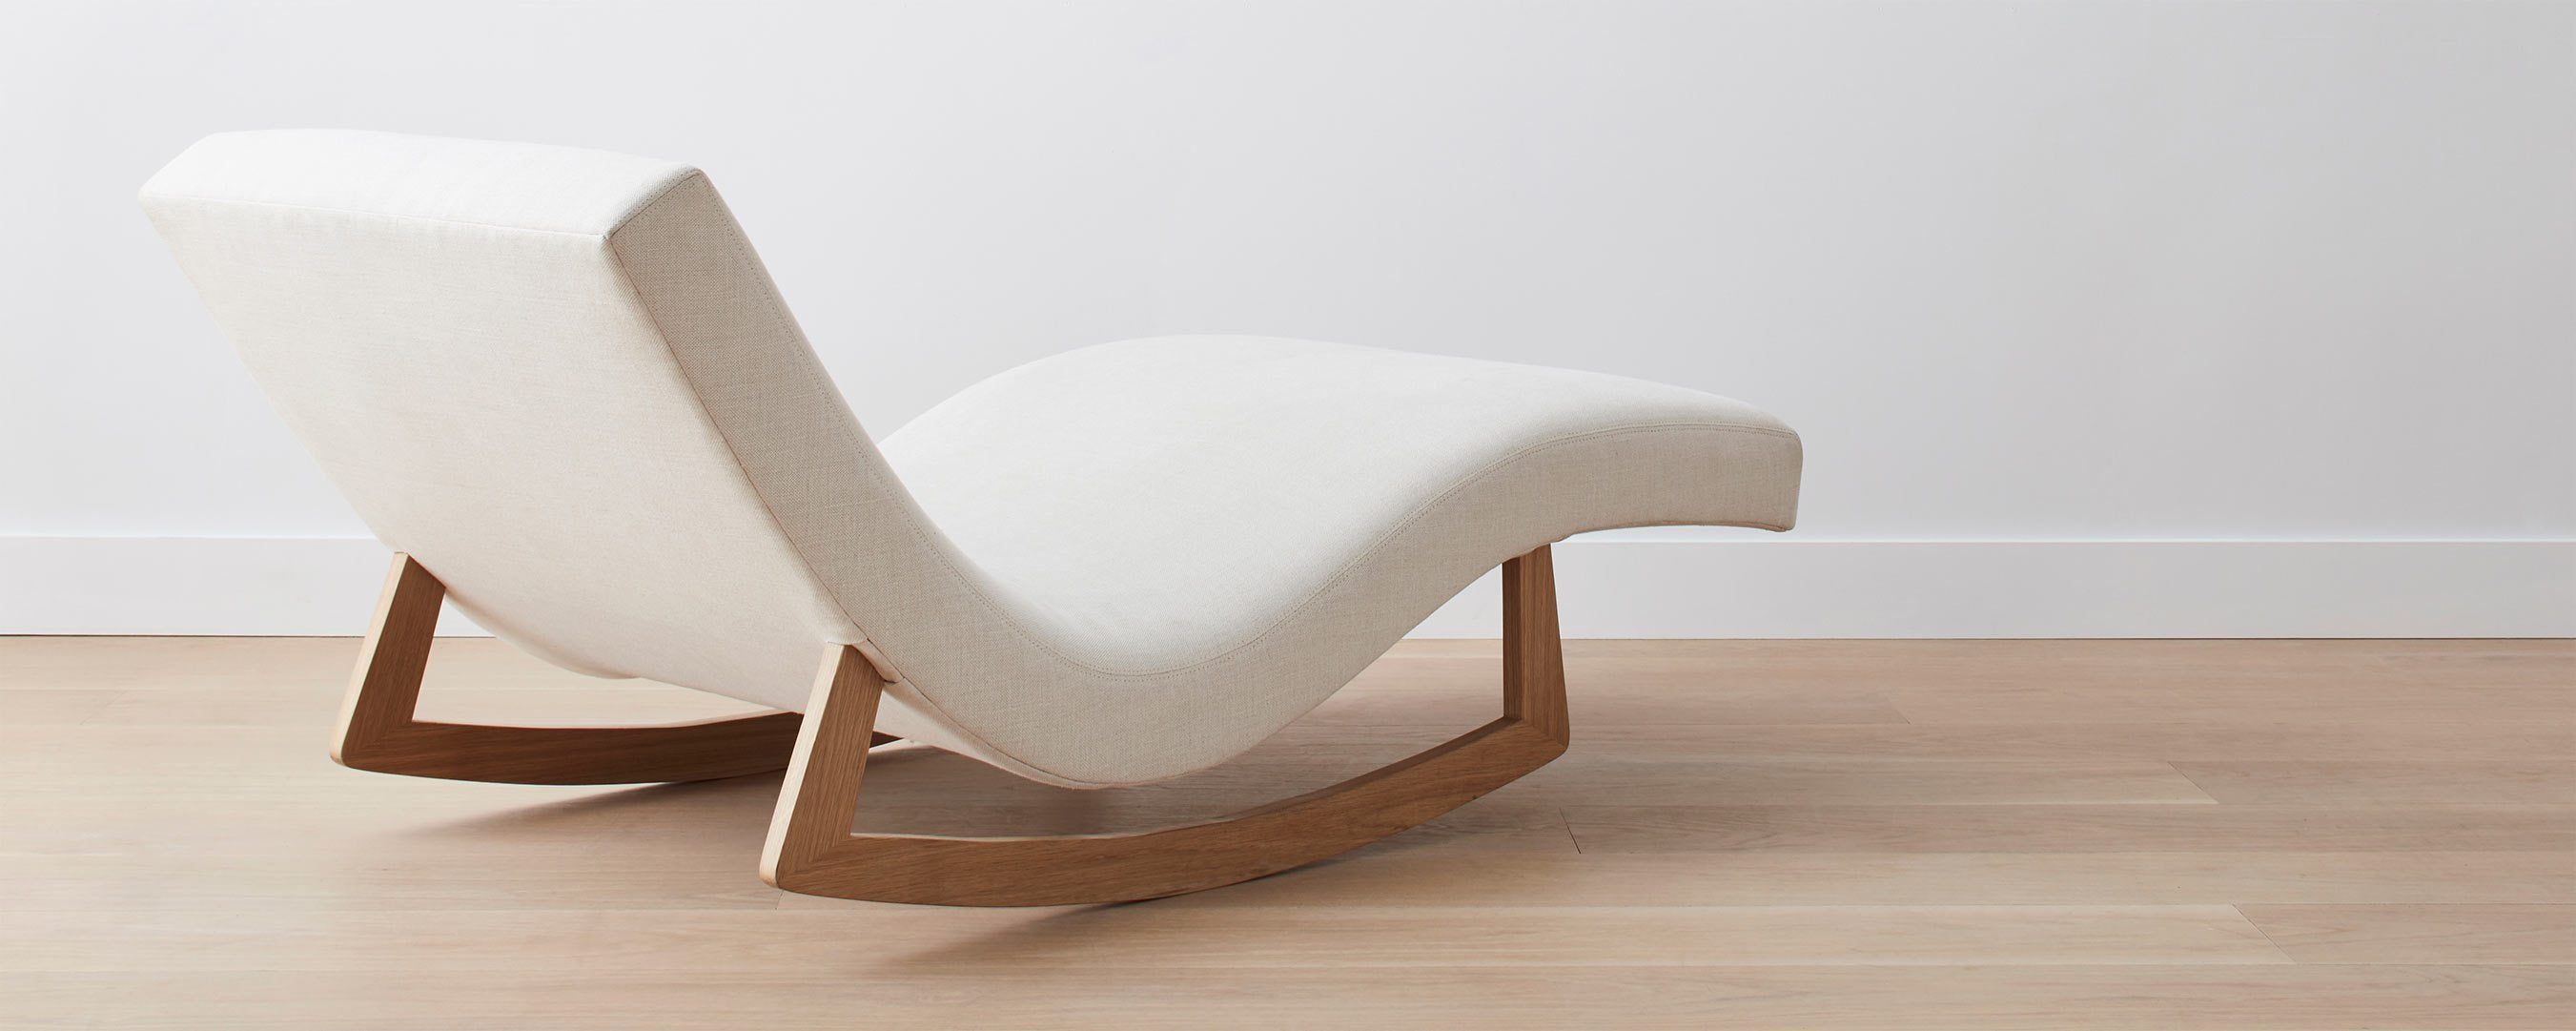 The Leisurama Rocking Chaise